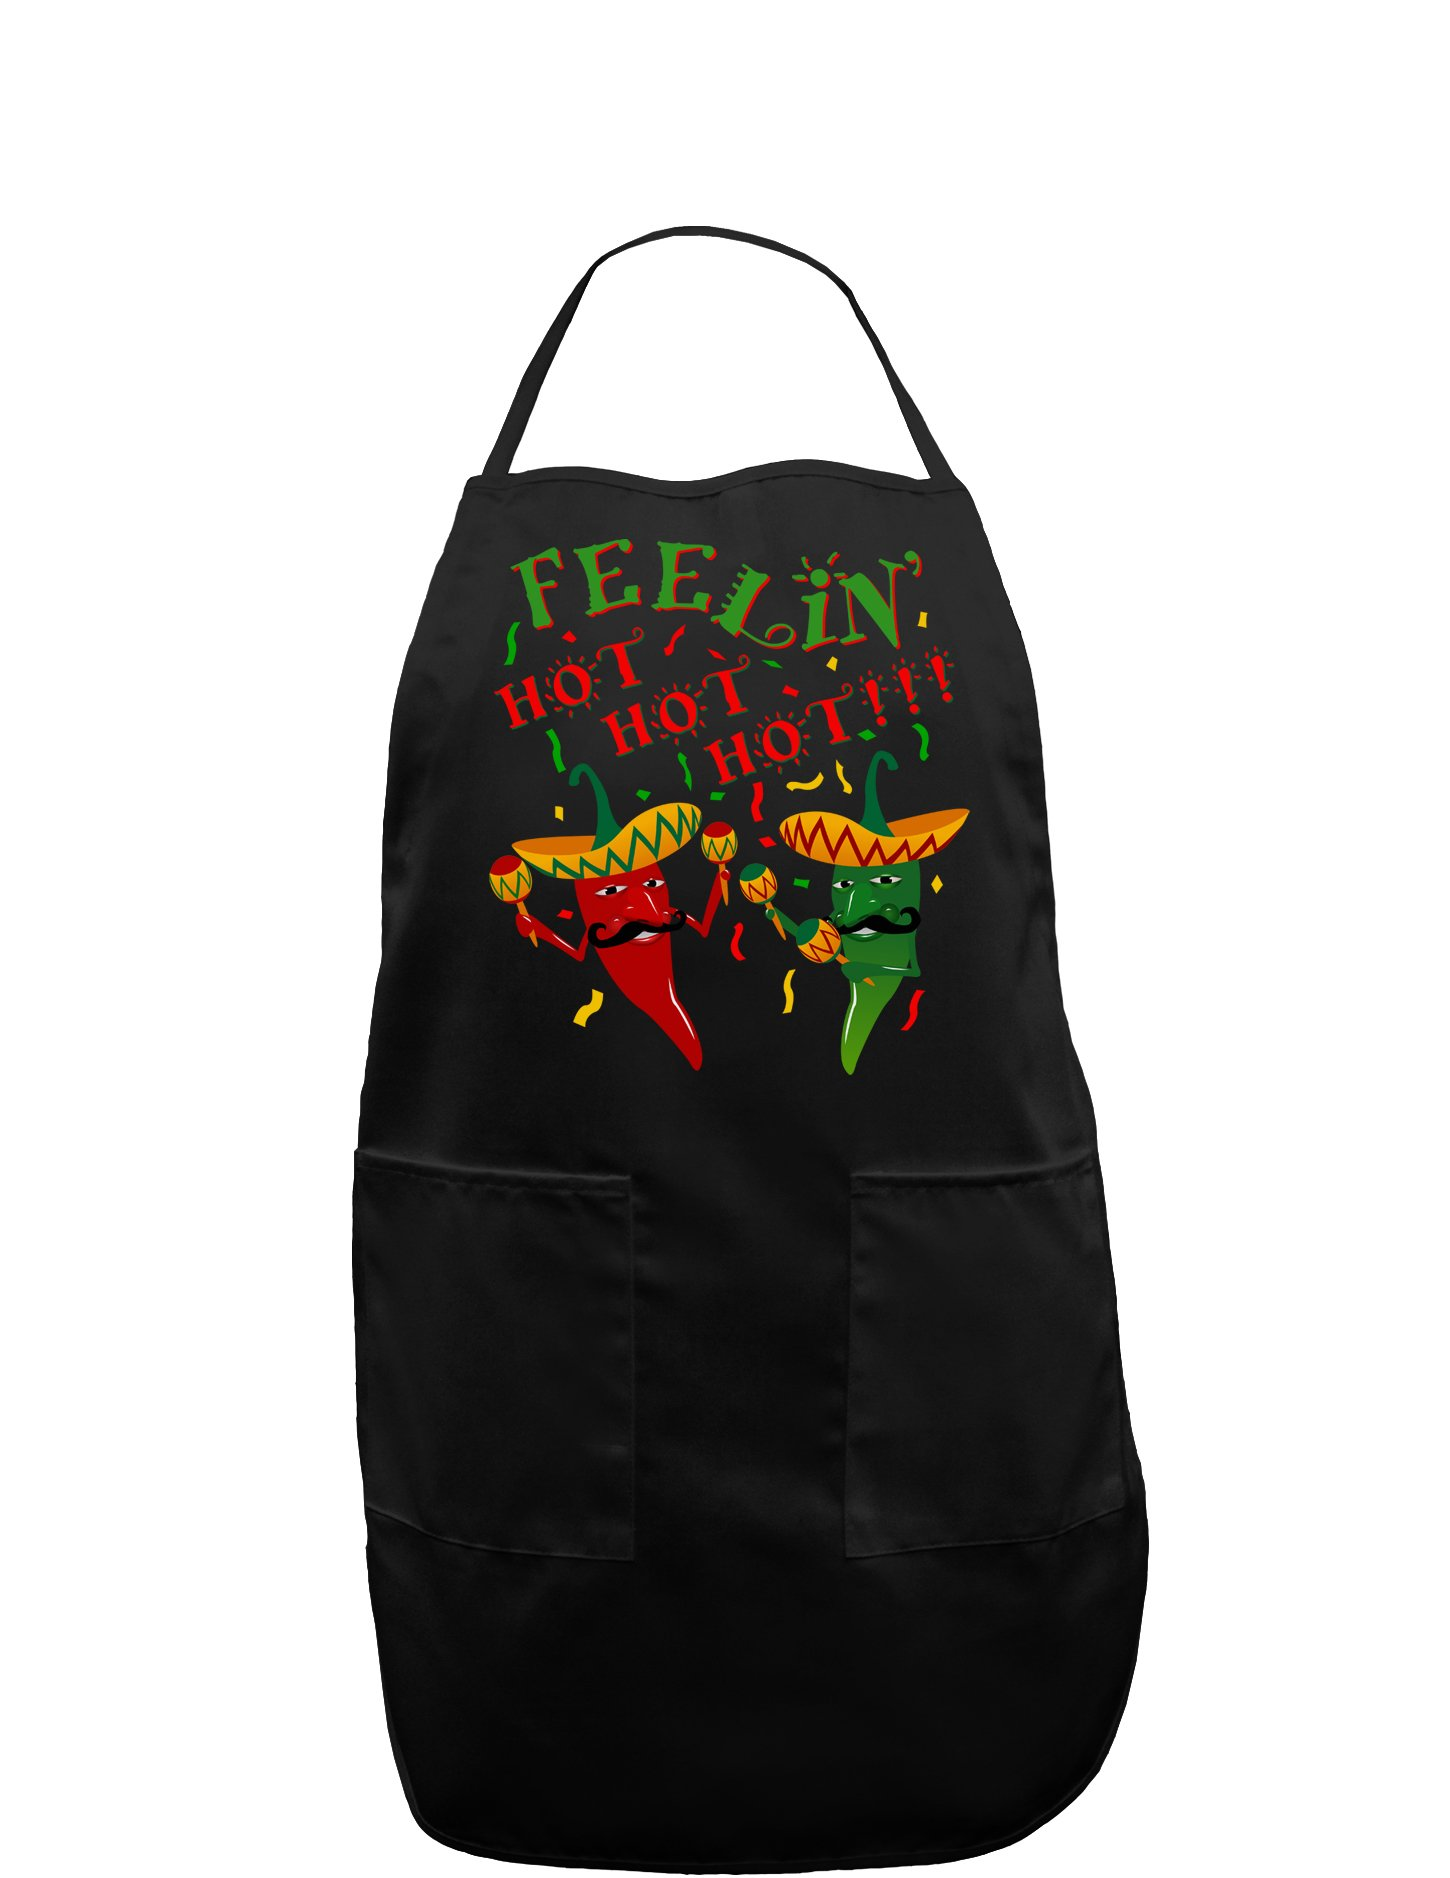 Feelin Hot Hot Hot Chili Peppers Dark Adult Apron - Black - One-Size